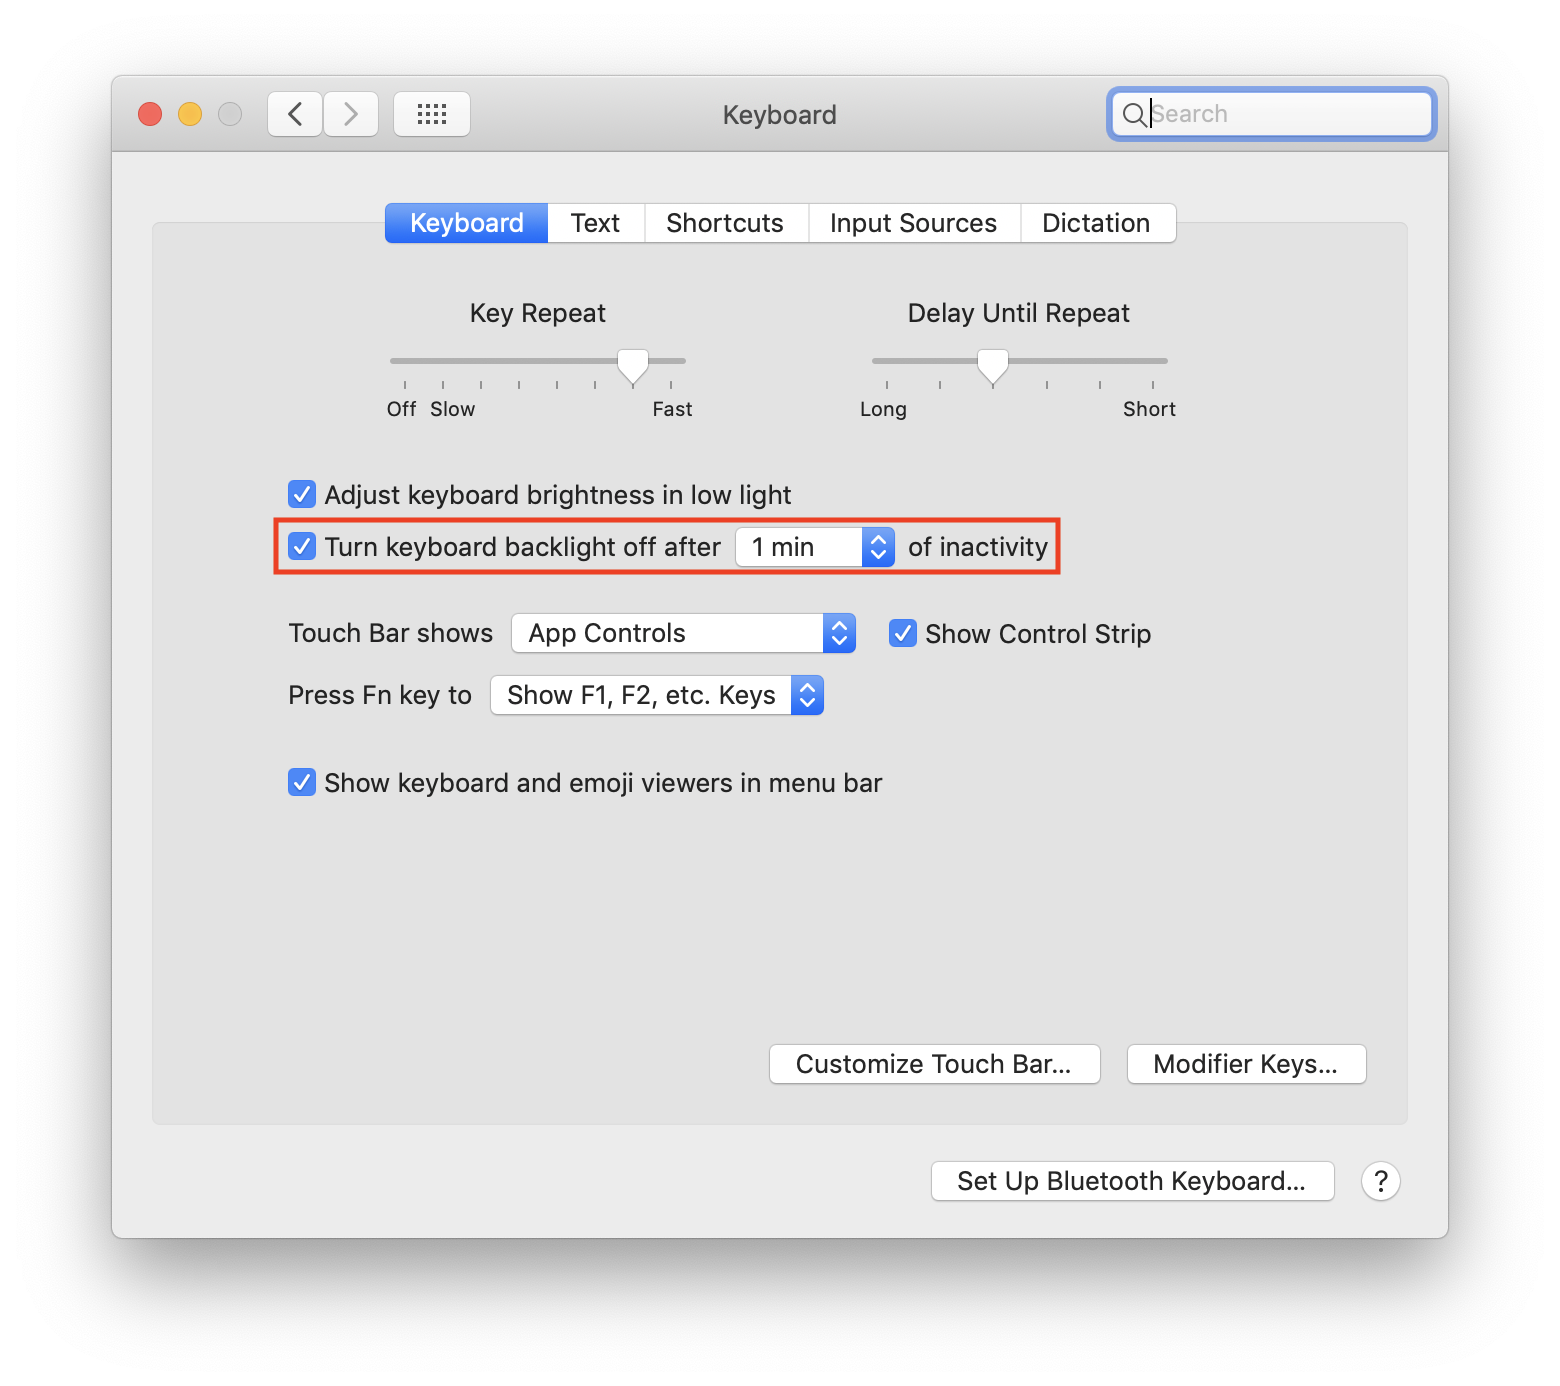 How to Automatically Turn Off Keyboard Backlighting with System Inactivity on MacOS